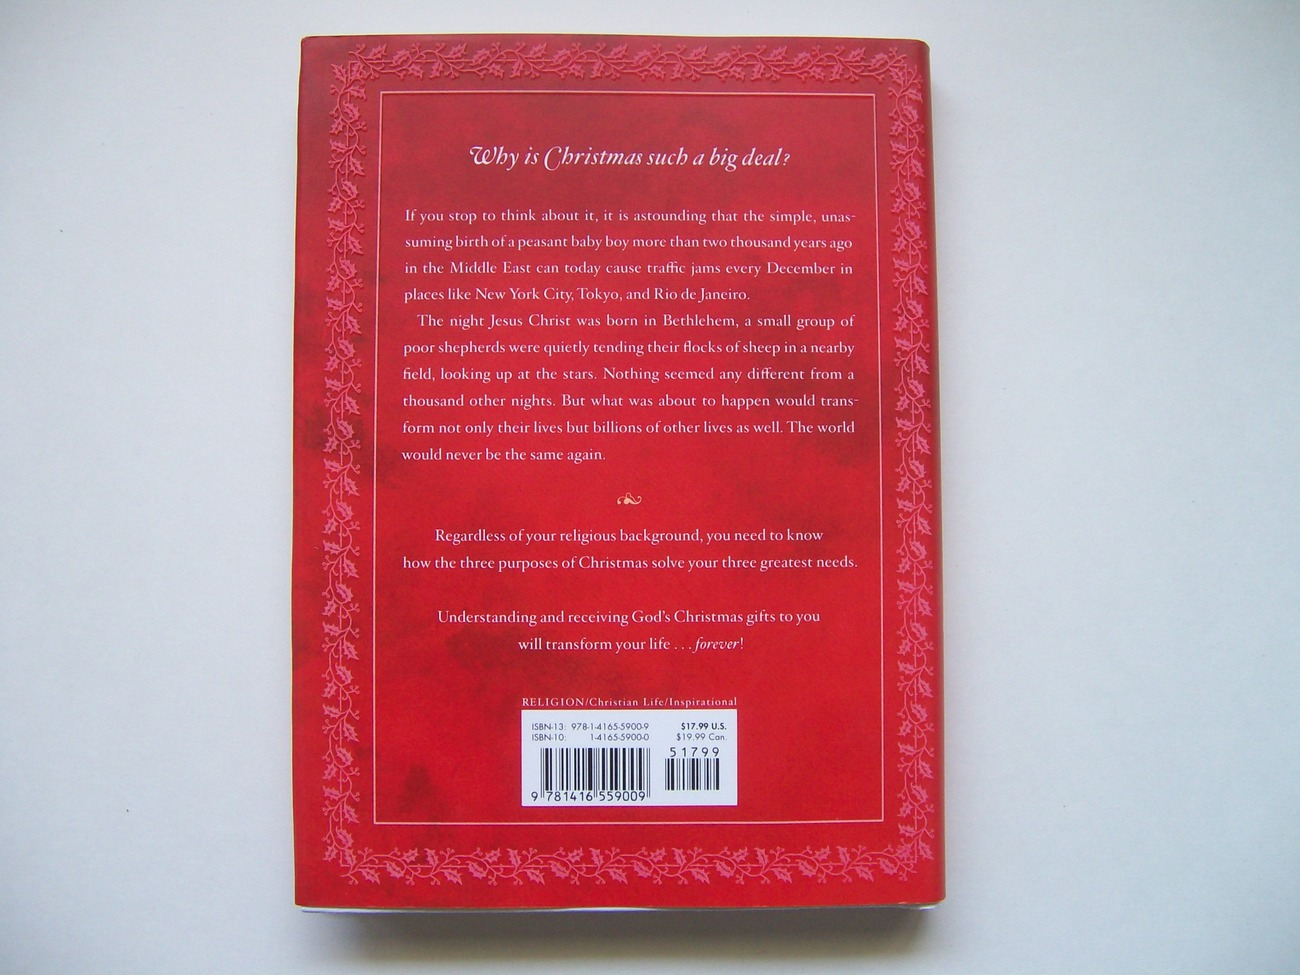 The Purpose Of Christmas By Rick Warren Hardcover First